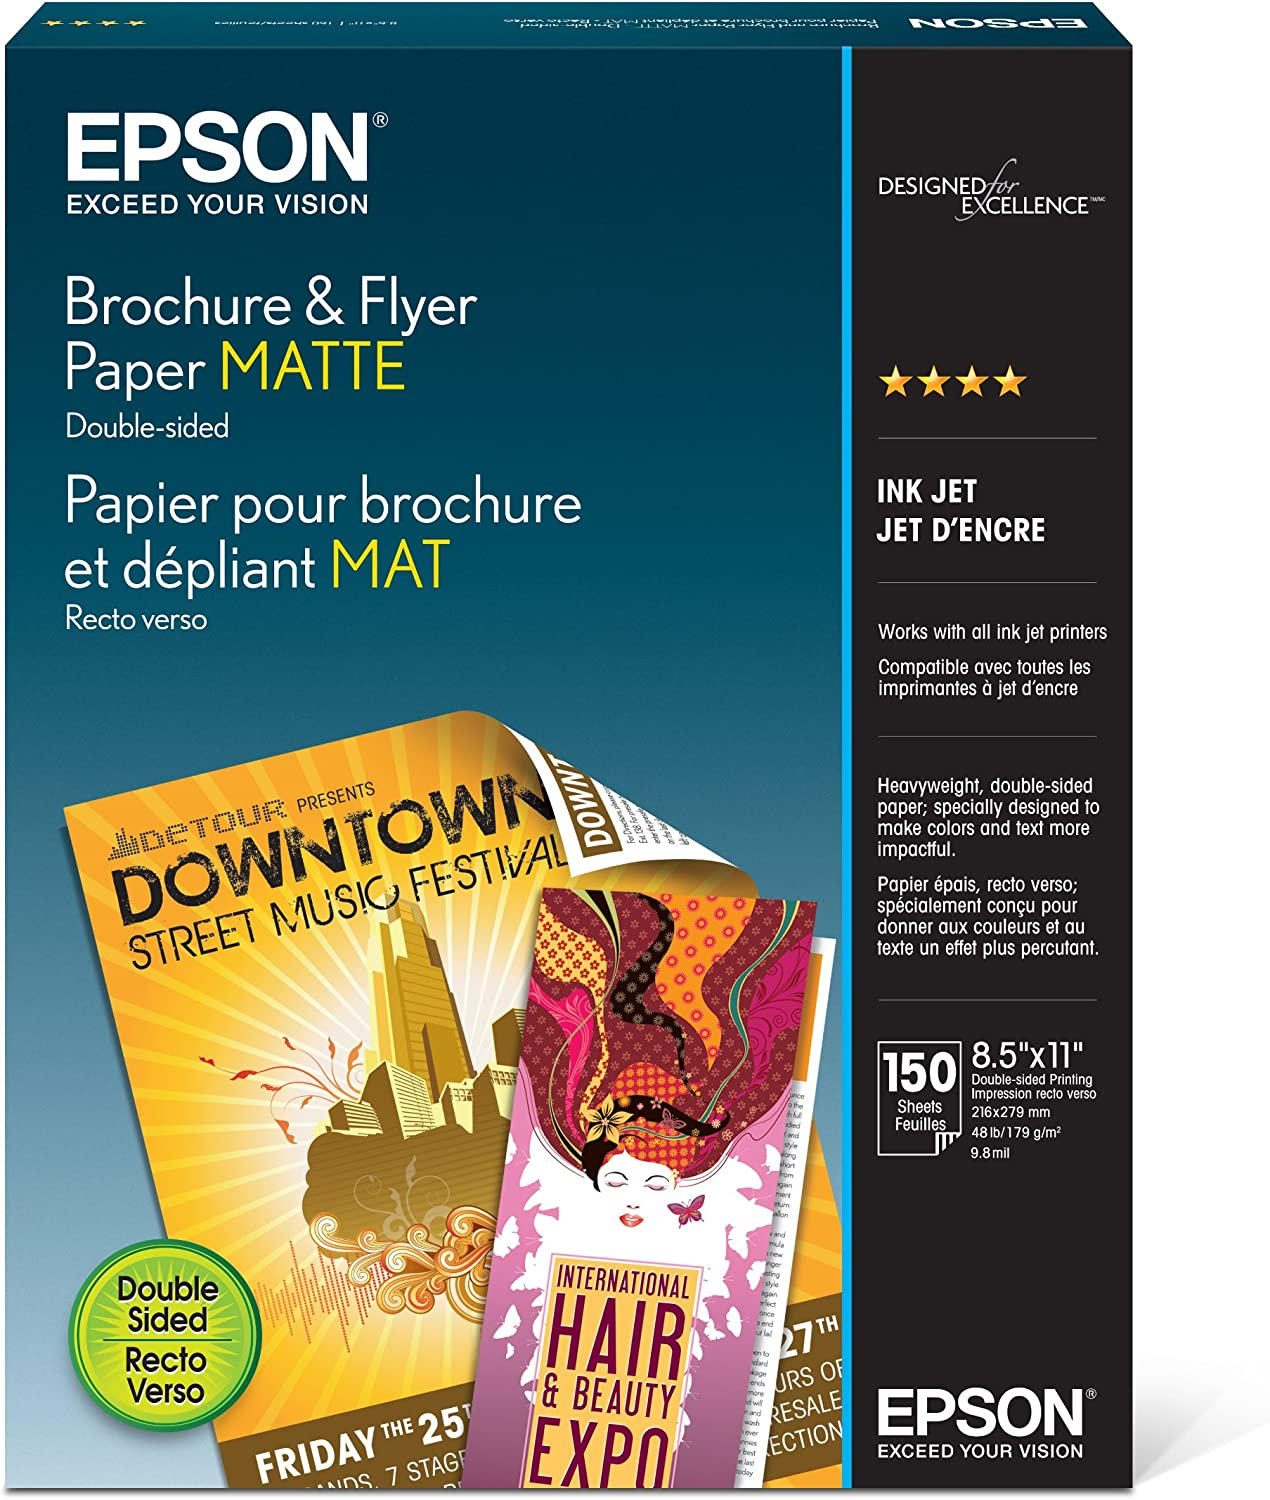 Epson Brochure Tampa Mall and New popularity Flyer Paper Matte S042384 Double-Sided